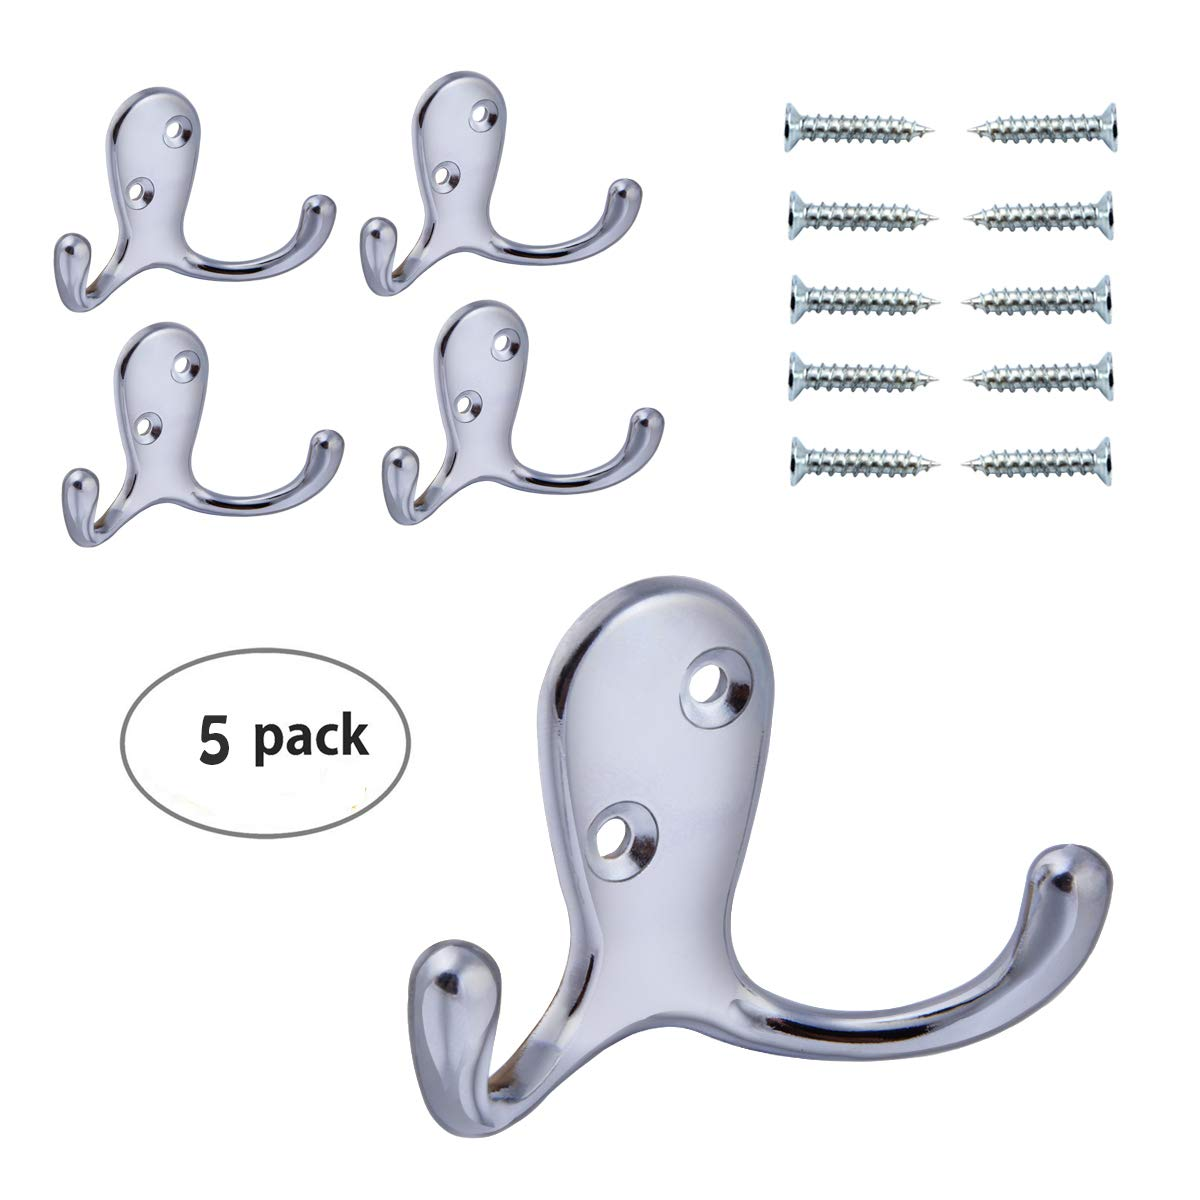 HoveBeaty Wall Hooks Double Prong Robe Hook Rustic Hooks Retro Clothes Hanger Coat Hanger Wall Mounted Hook with Screws 5 Pack (Silver)